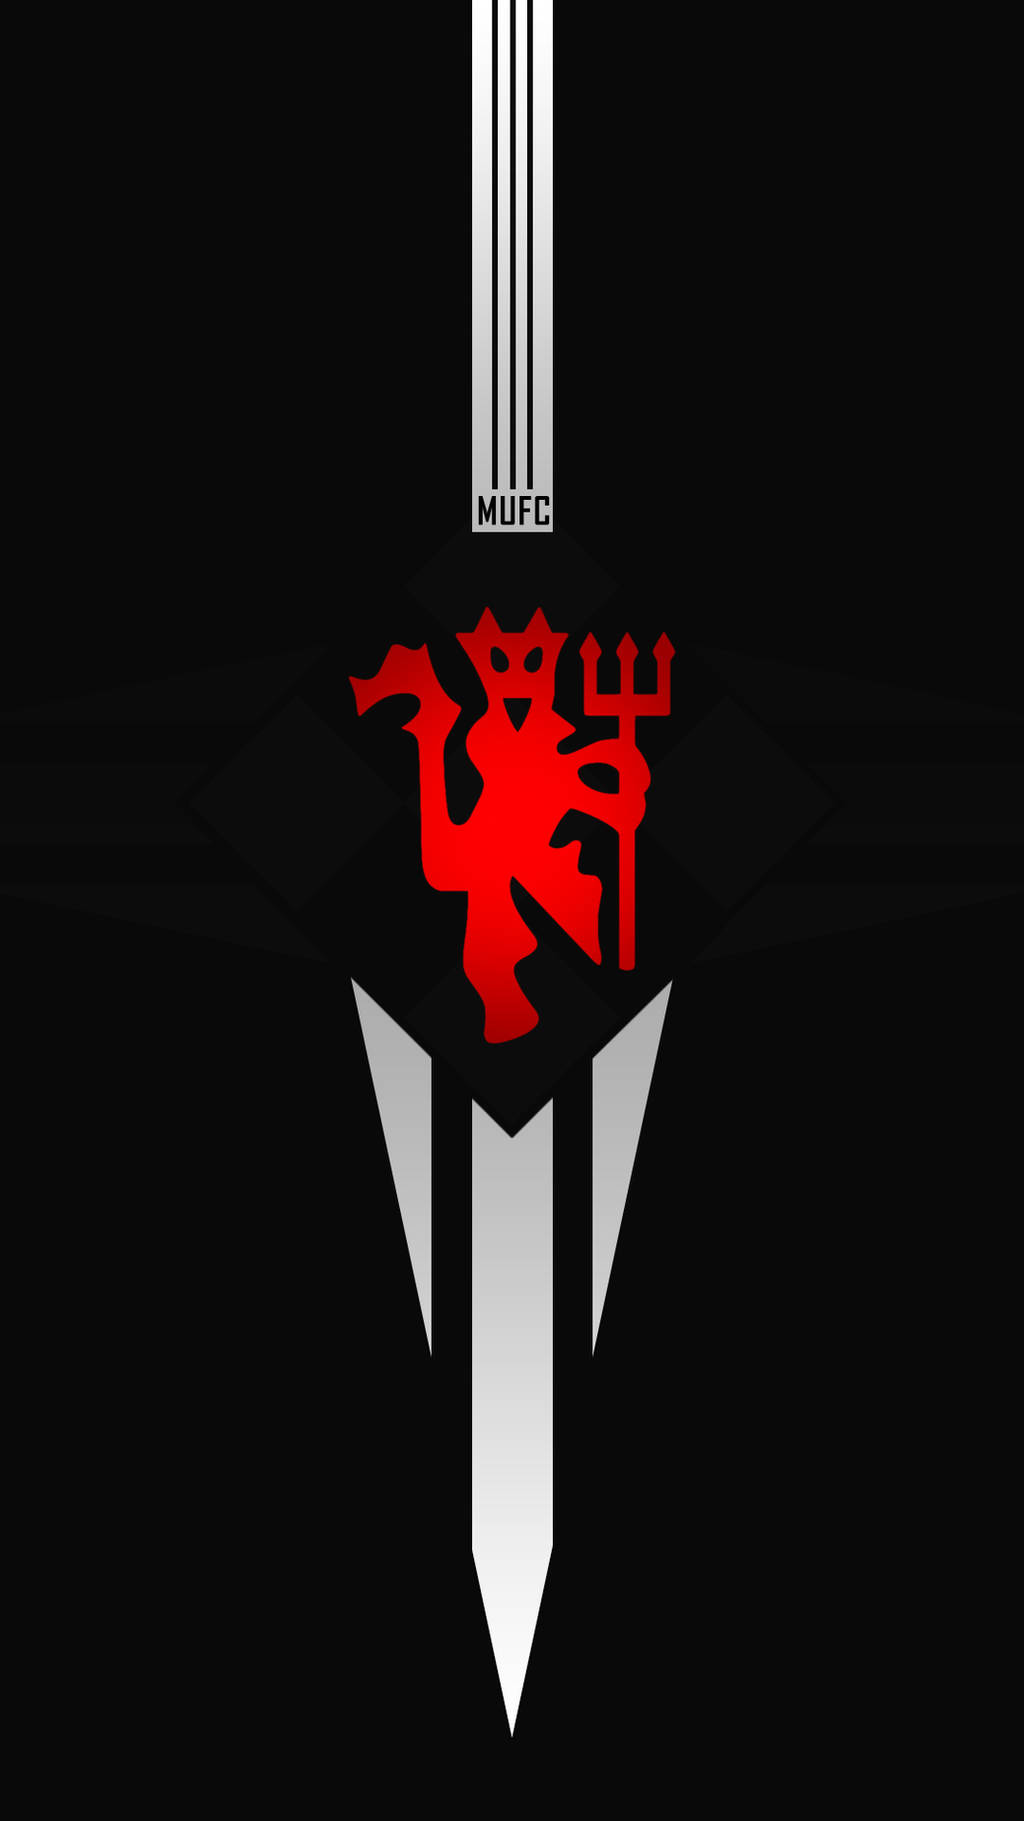 Manchester United Wallpaper by K23designs